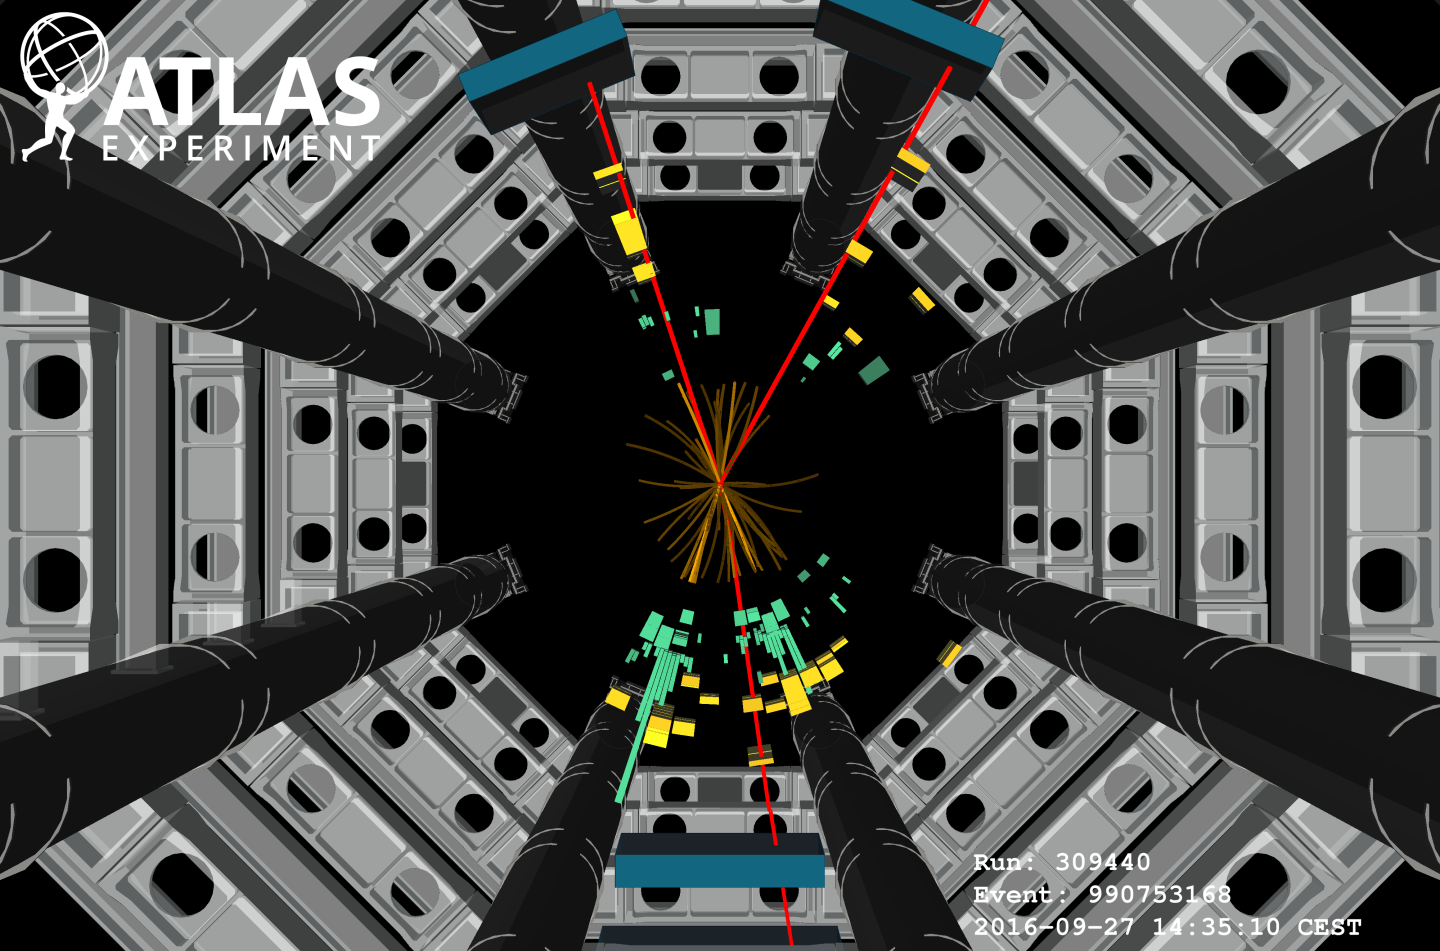 ATLAS Event Display: Higgs boson decaying to a b-quark pair